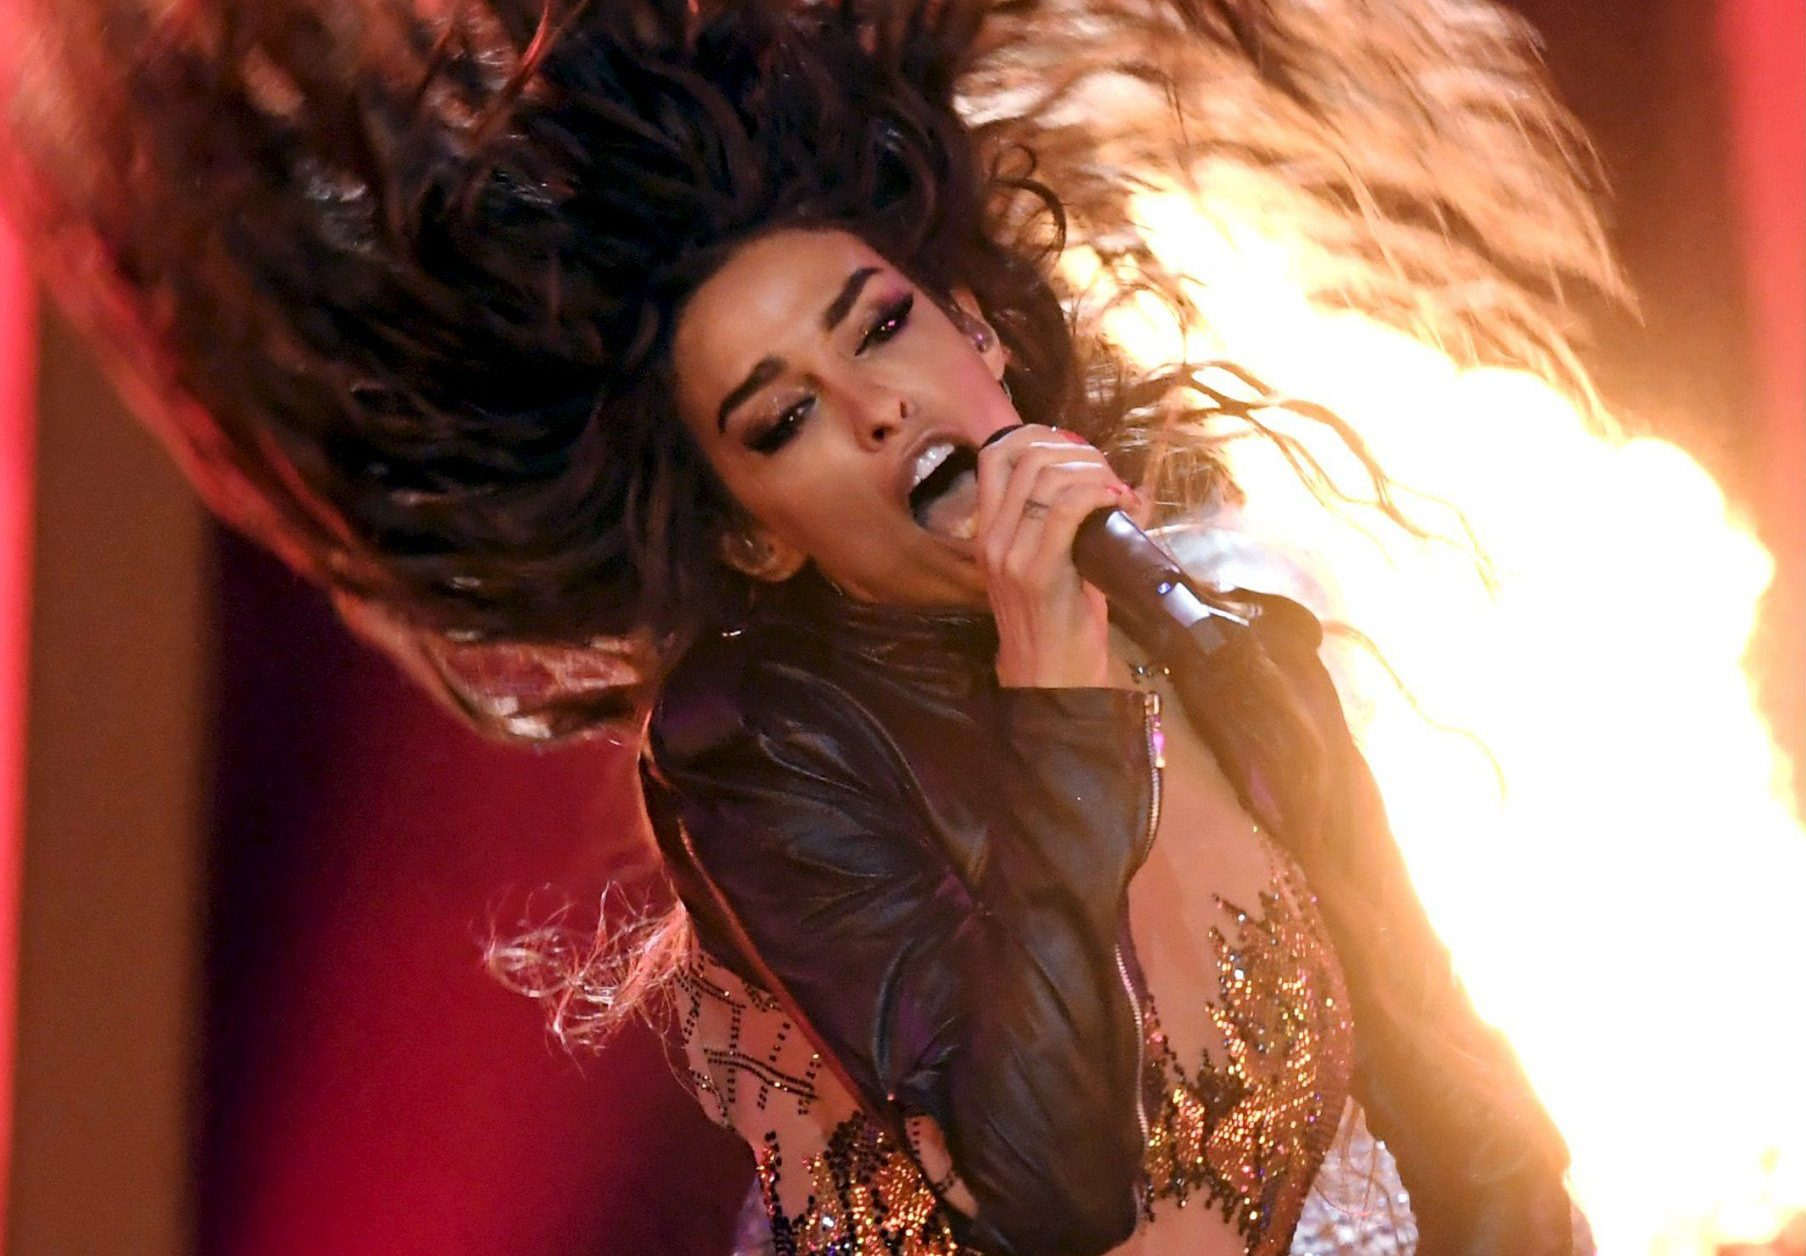 Eurovision odds make it two-horse race between Cyprus and Israel following semi-finals